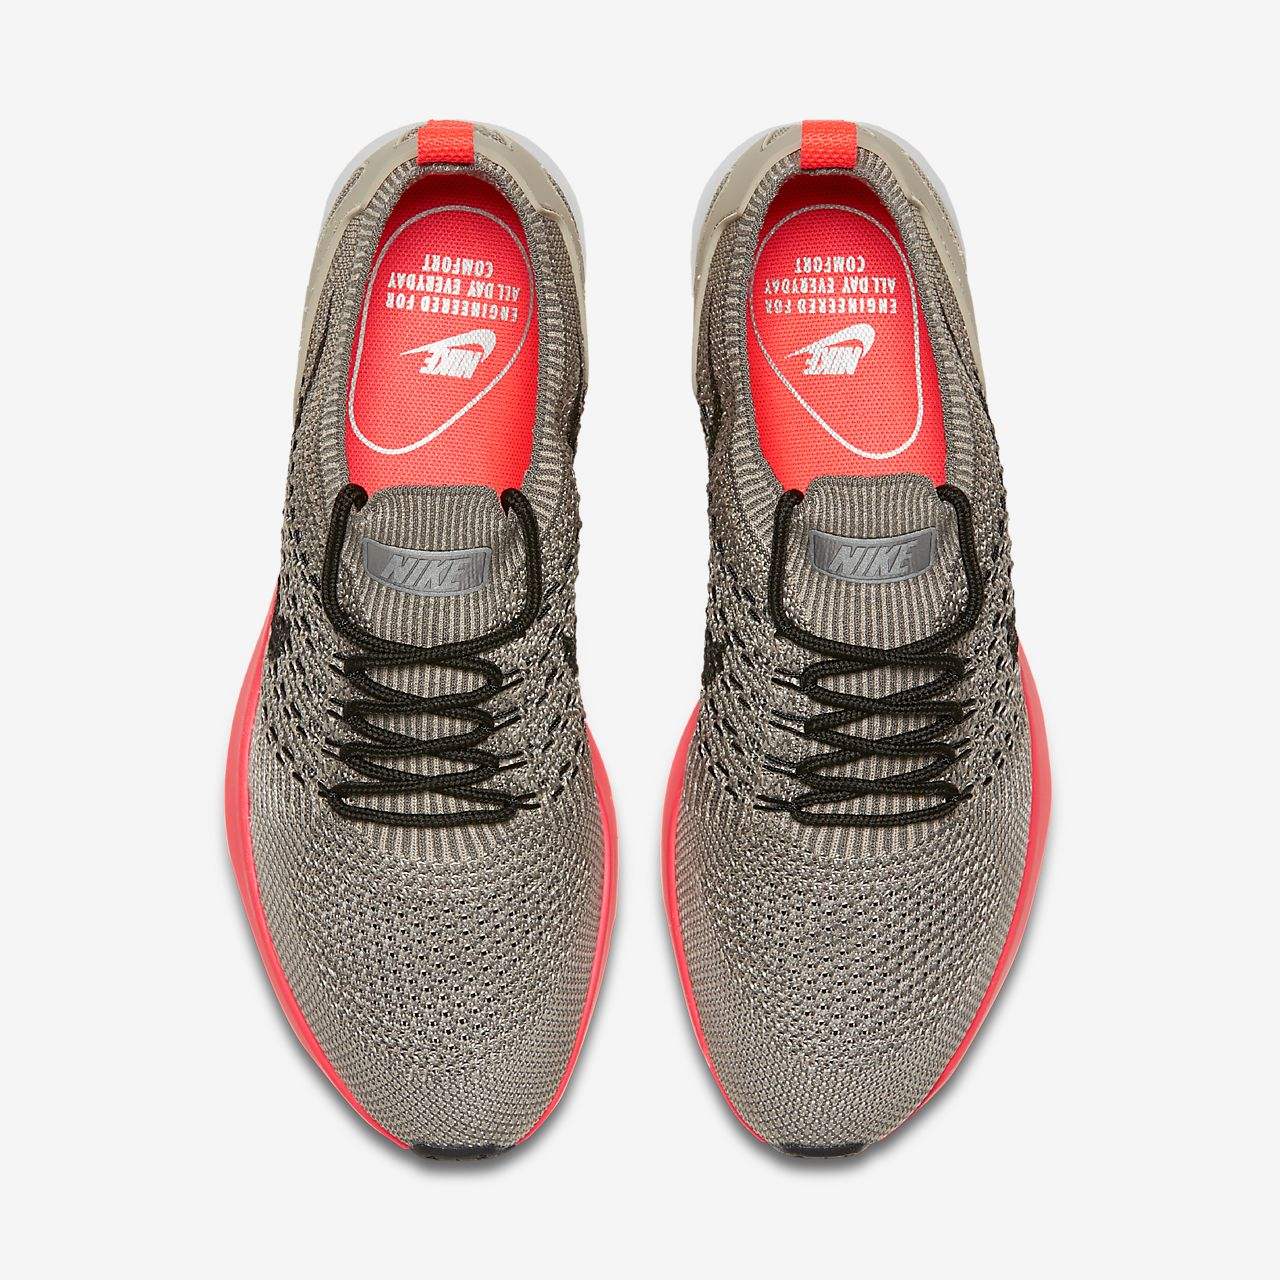 ... Chaussure Nike Air Zoom Mariah Flyknit Racer pour Femme